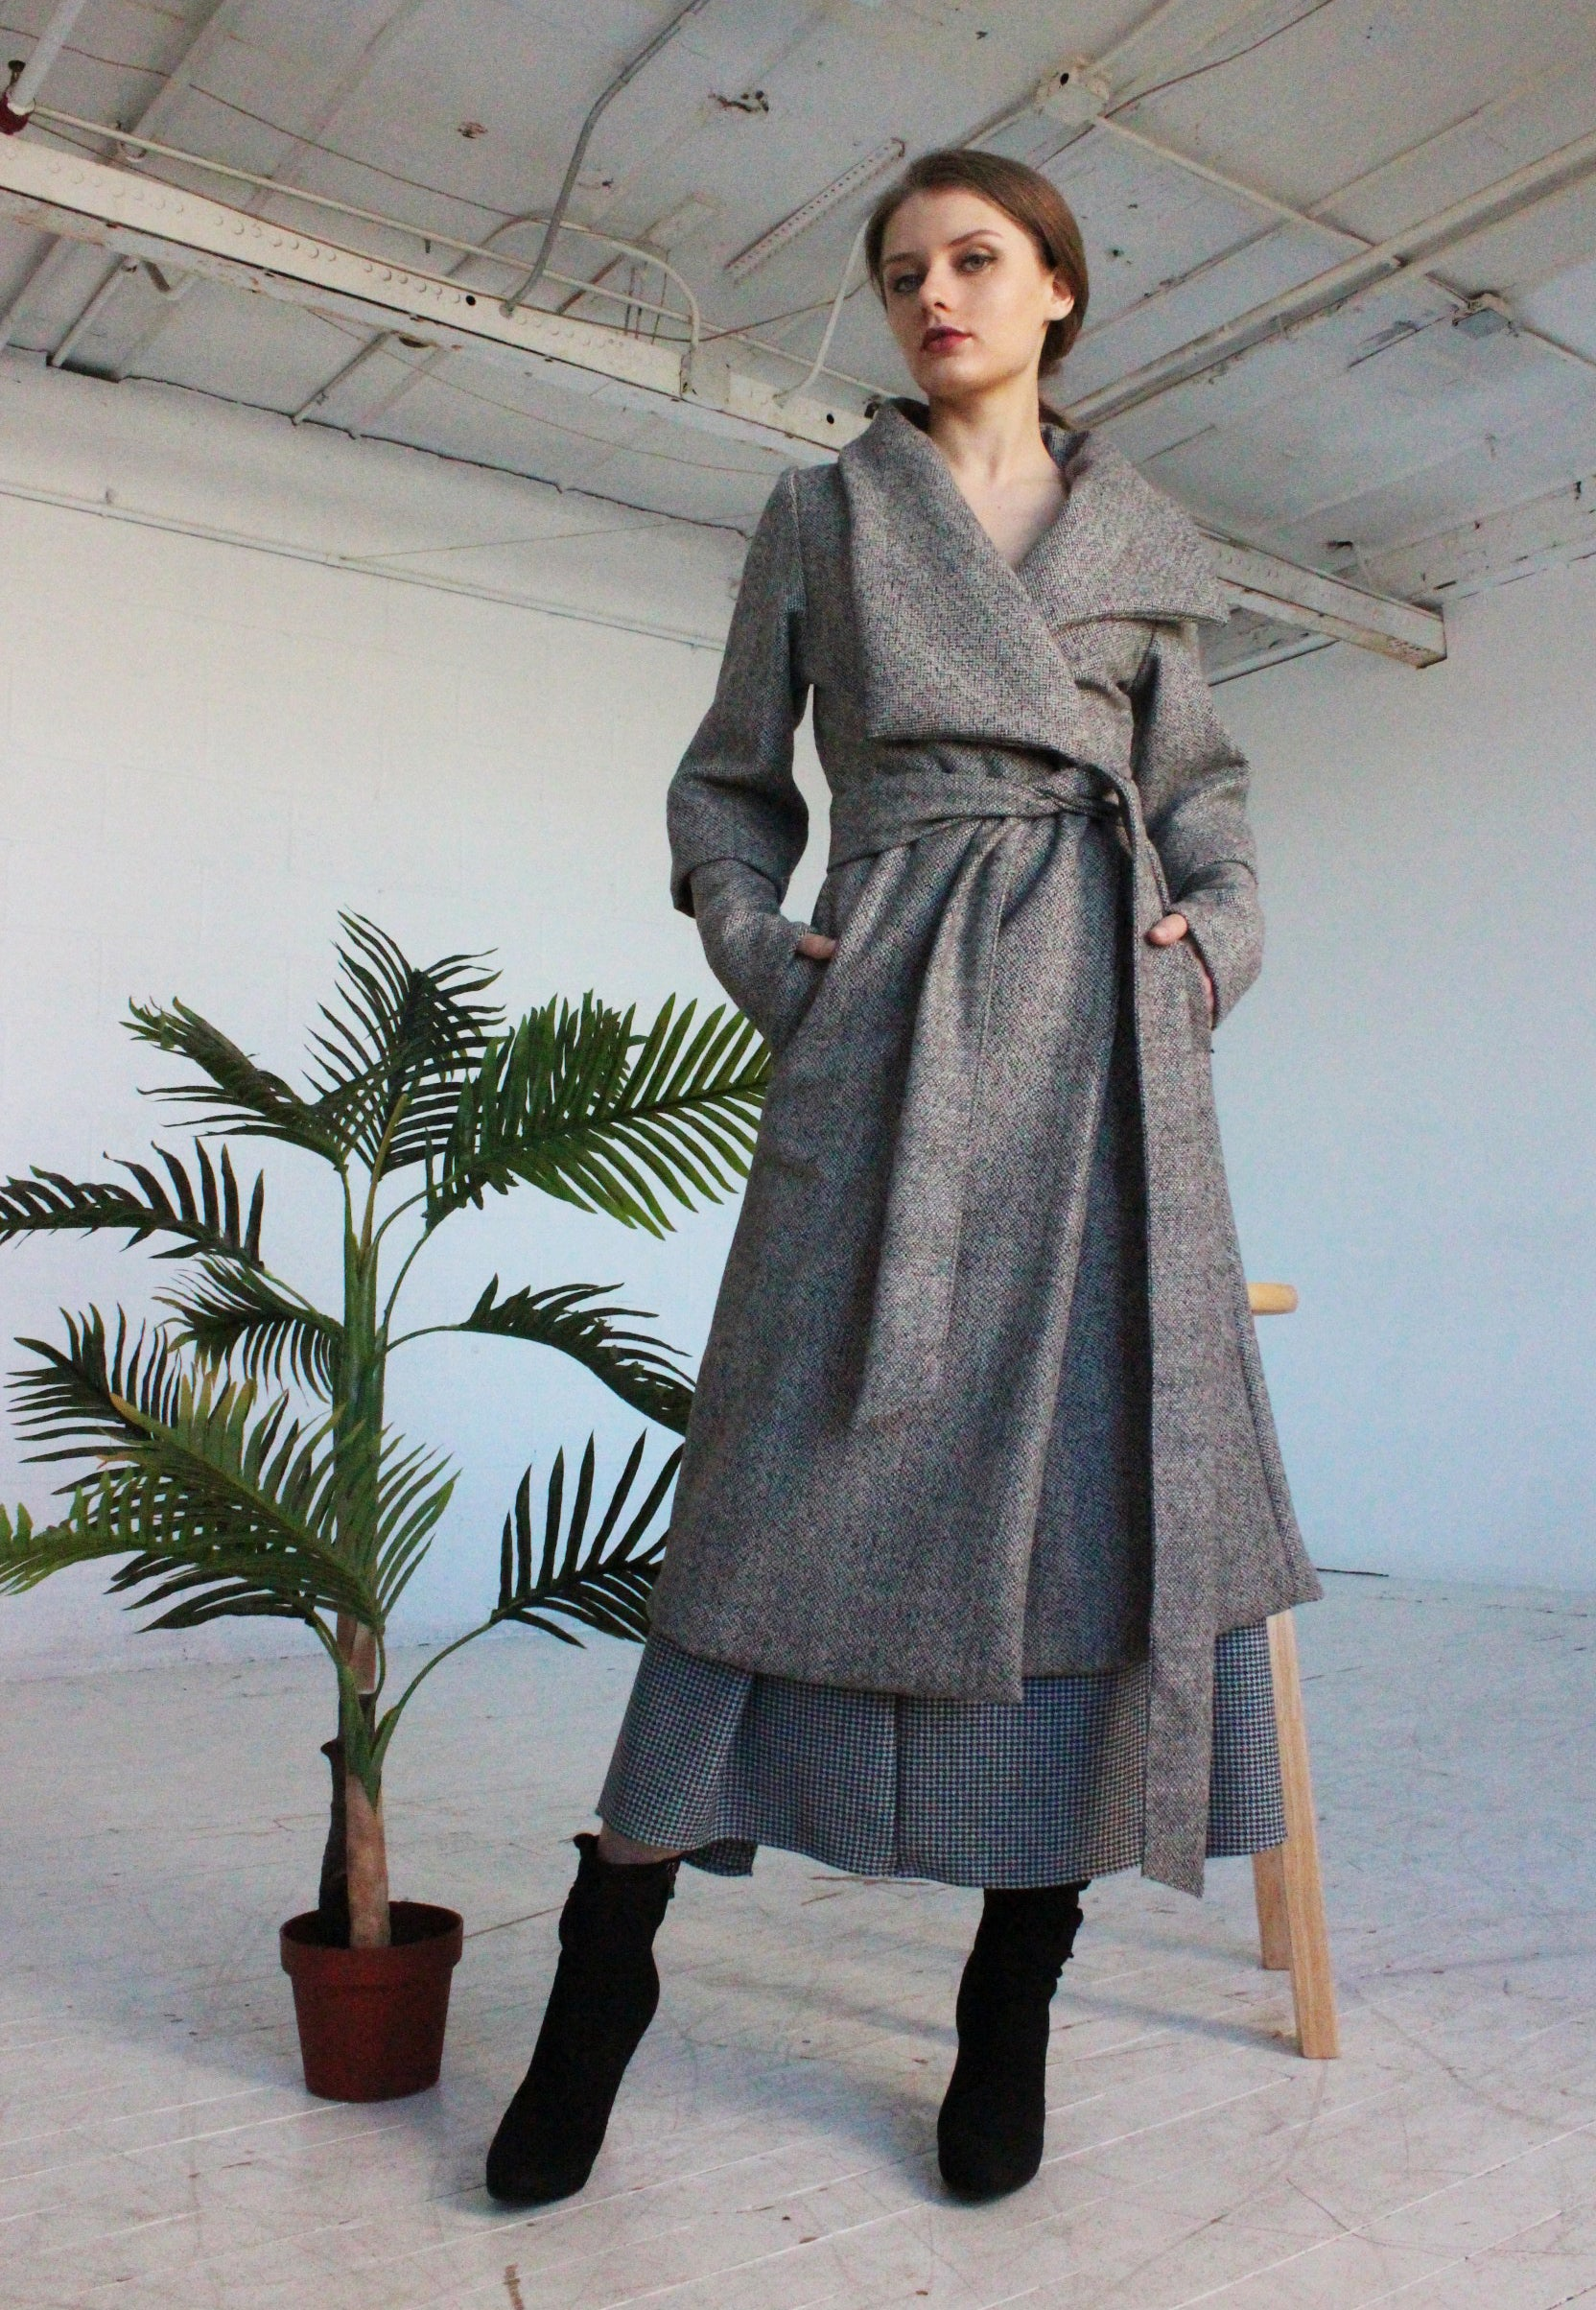 Ying Cai _ AW 21 Look 3 - 5